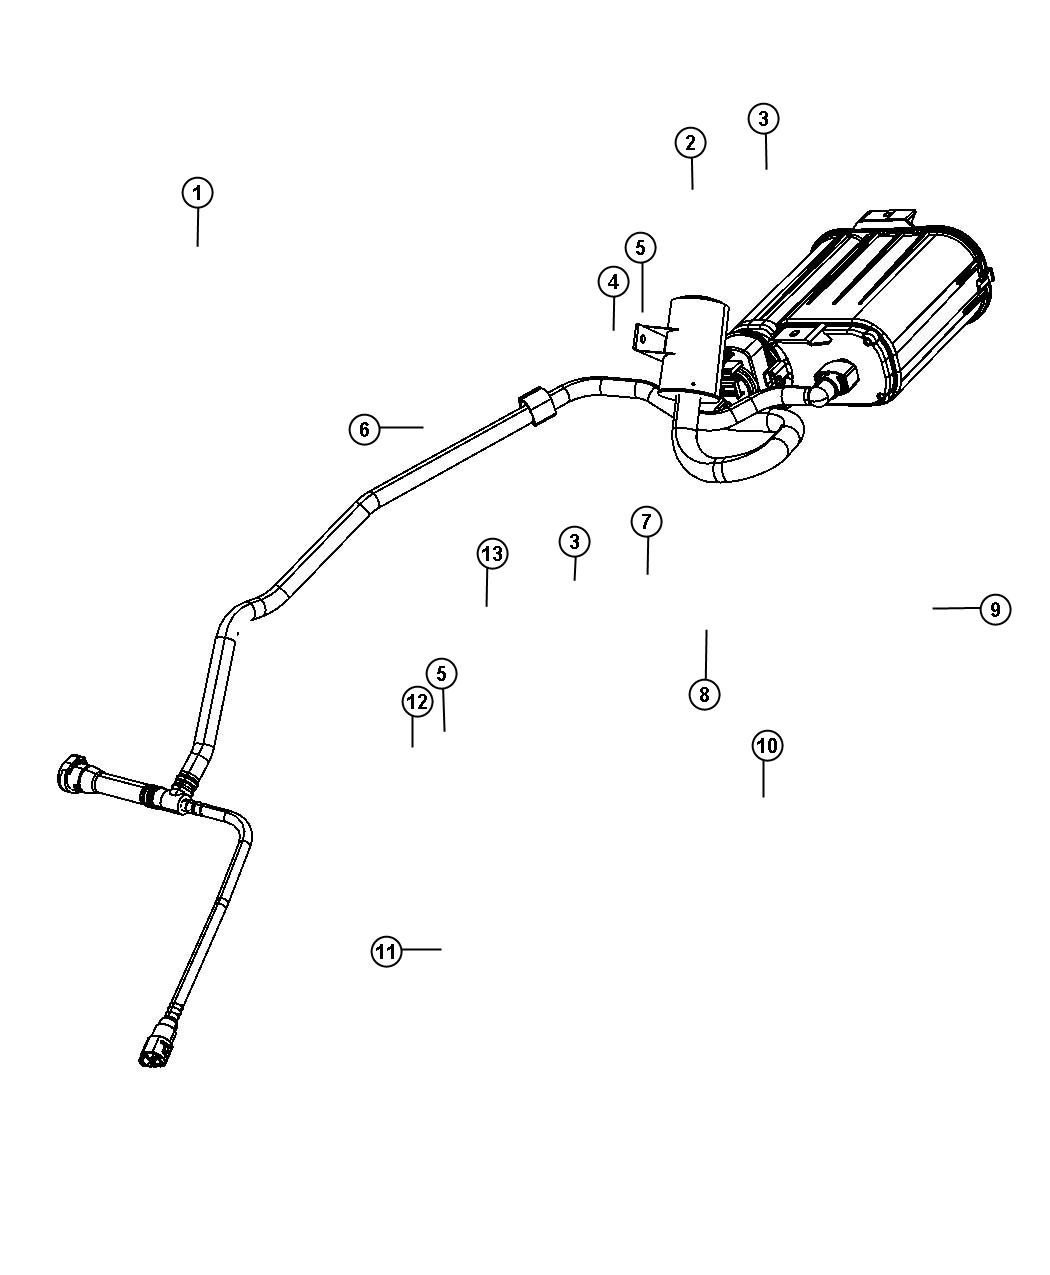 Showassembly furthermore 2004 Dodge Durango Belt Routing Diagram likewise Canister Purge Solenoid On Location Explorer moreover Dodge Grand Caravan Car And Driver likewise 98 Camery Vacuum Lines 51185. on dodge avenger evap canister